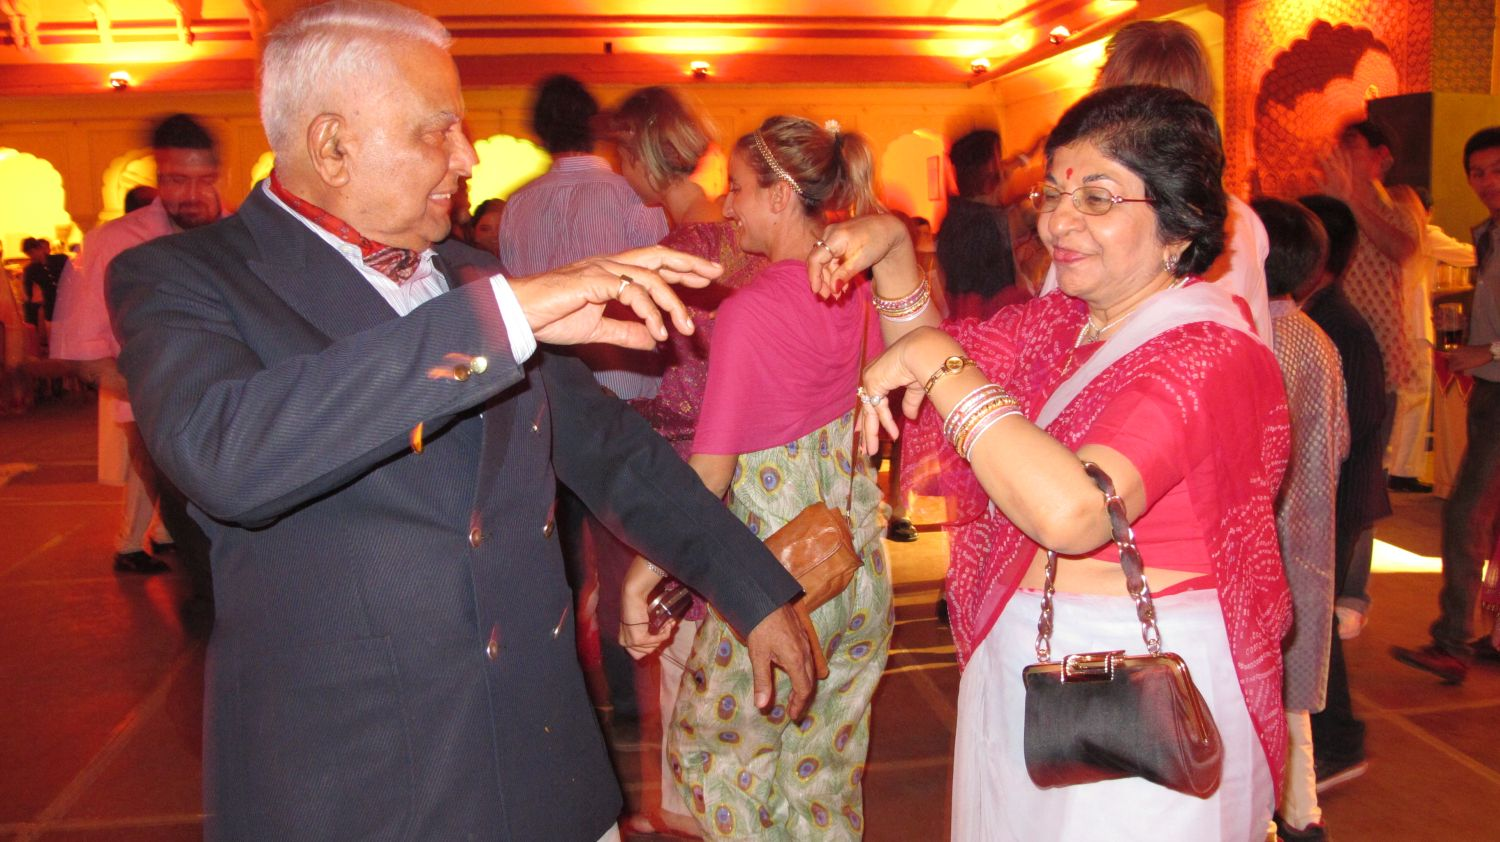 City palace of Jaipur | Royal family | Private party | Dancing | ©sandrine cohen